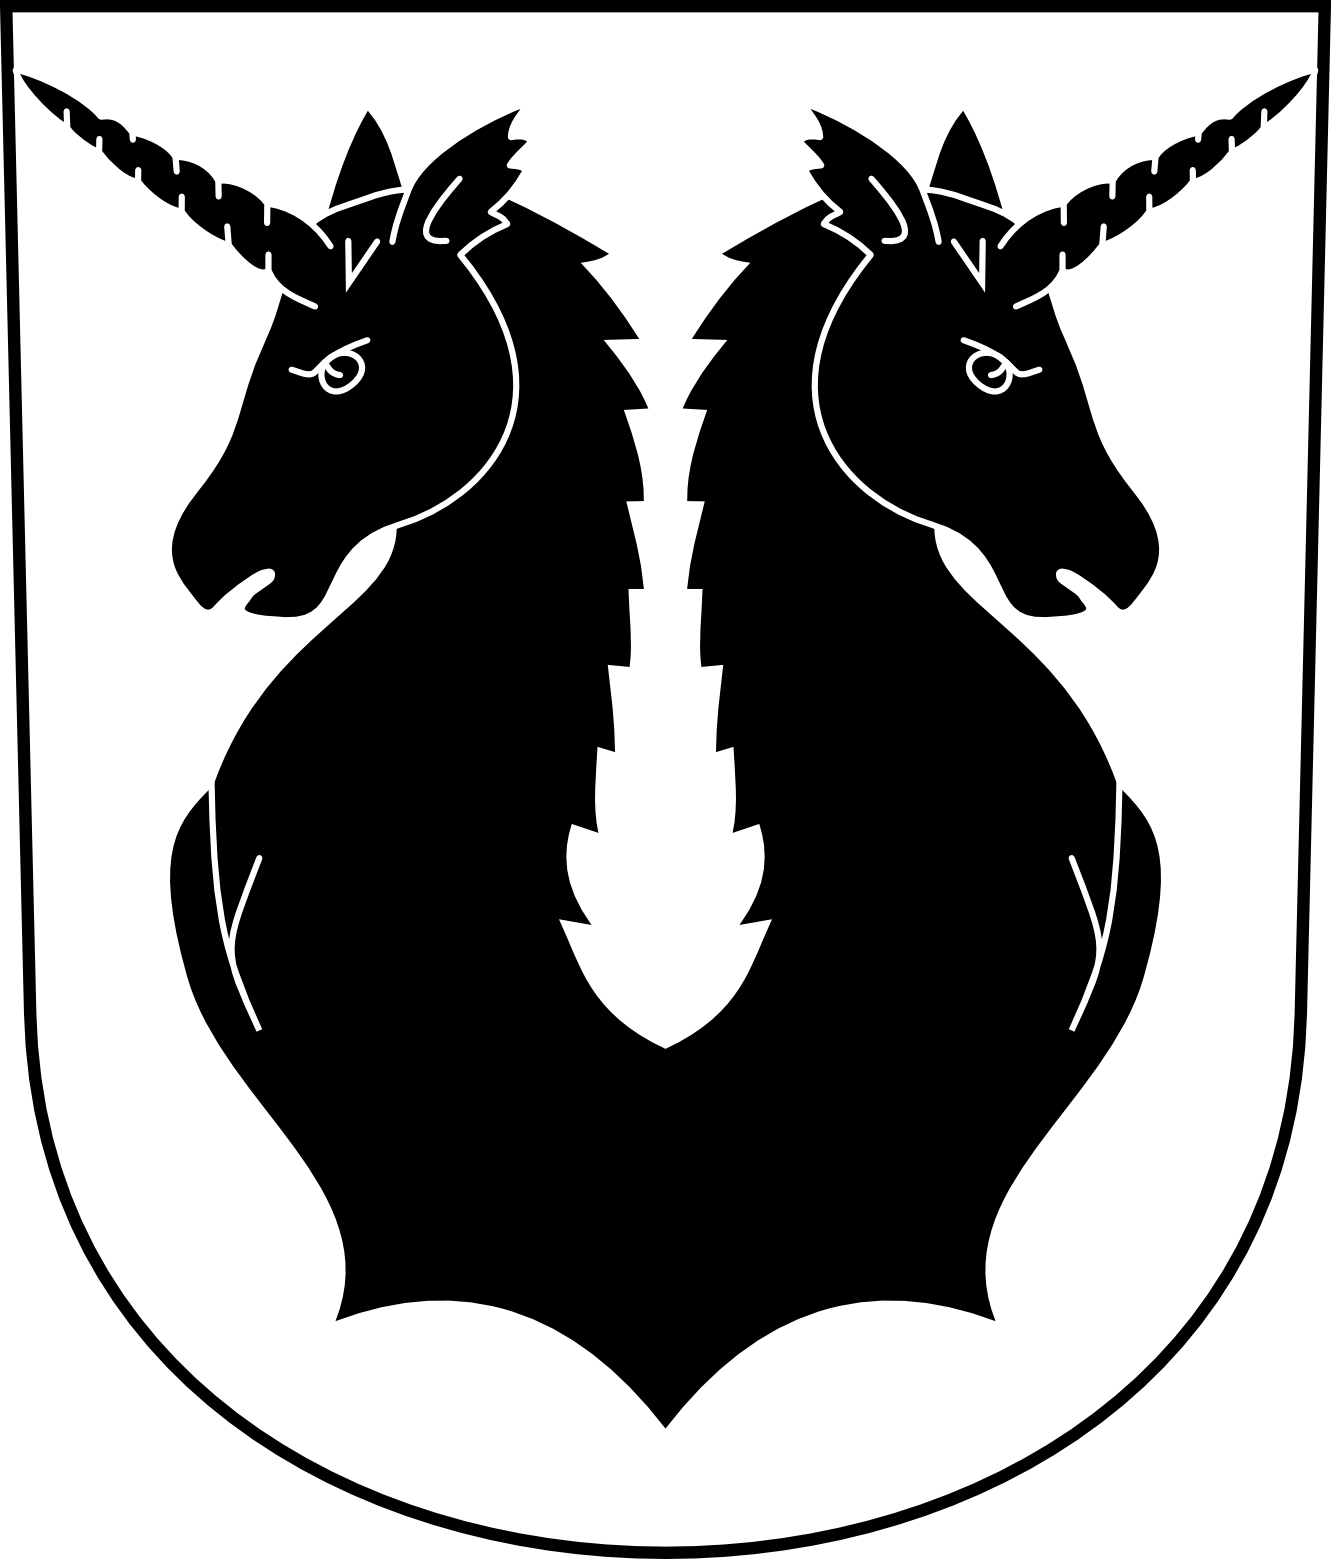 Unicorn  black and white unicorn with wings clipart black and white free